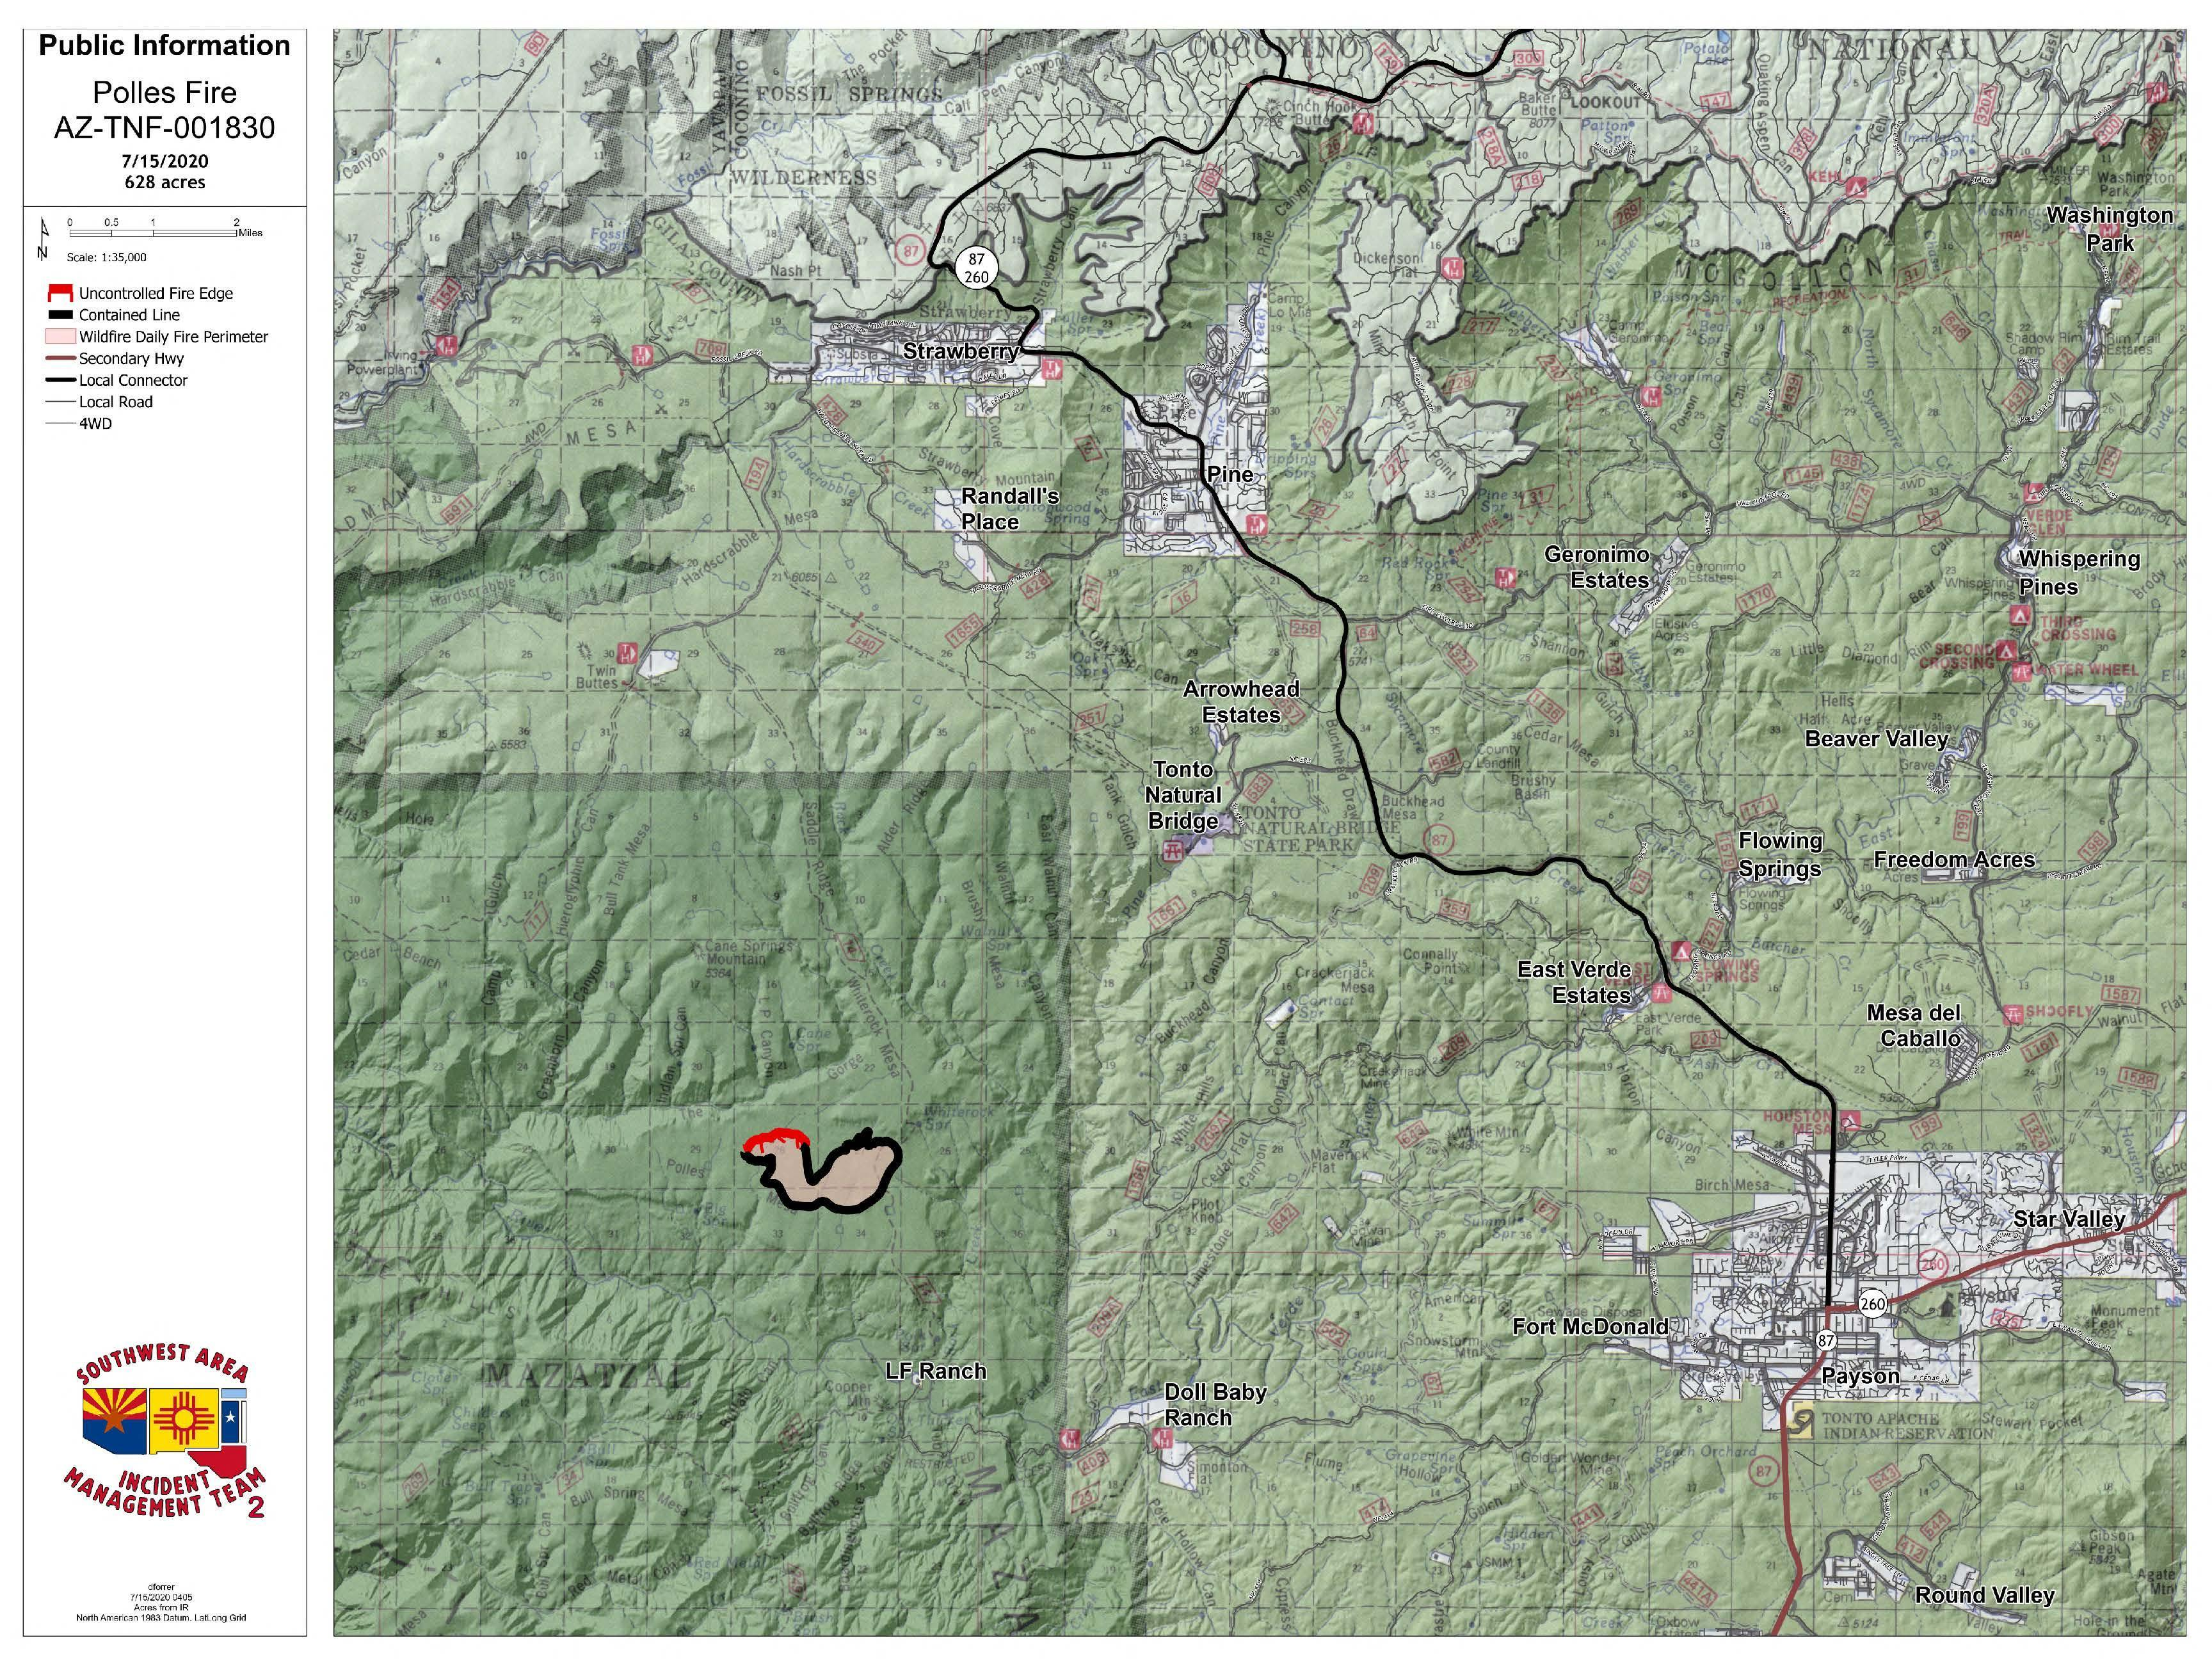 Photo of a map with an outline of a fire location